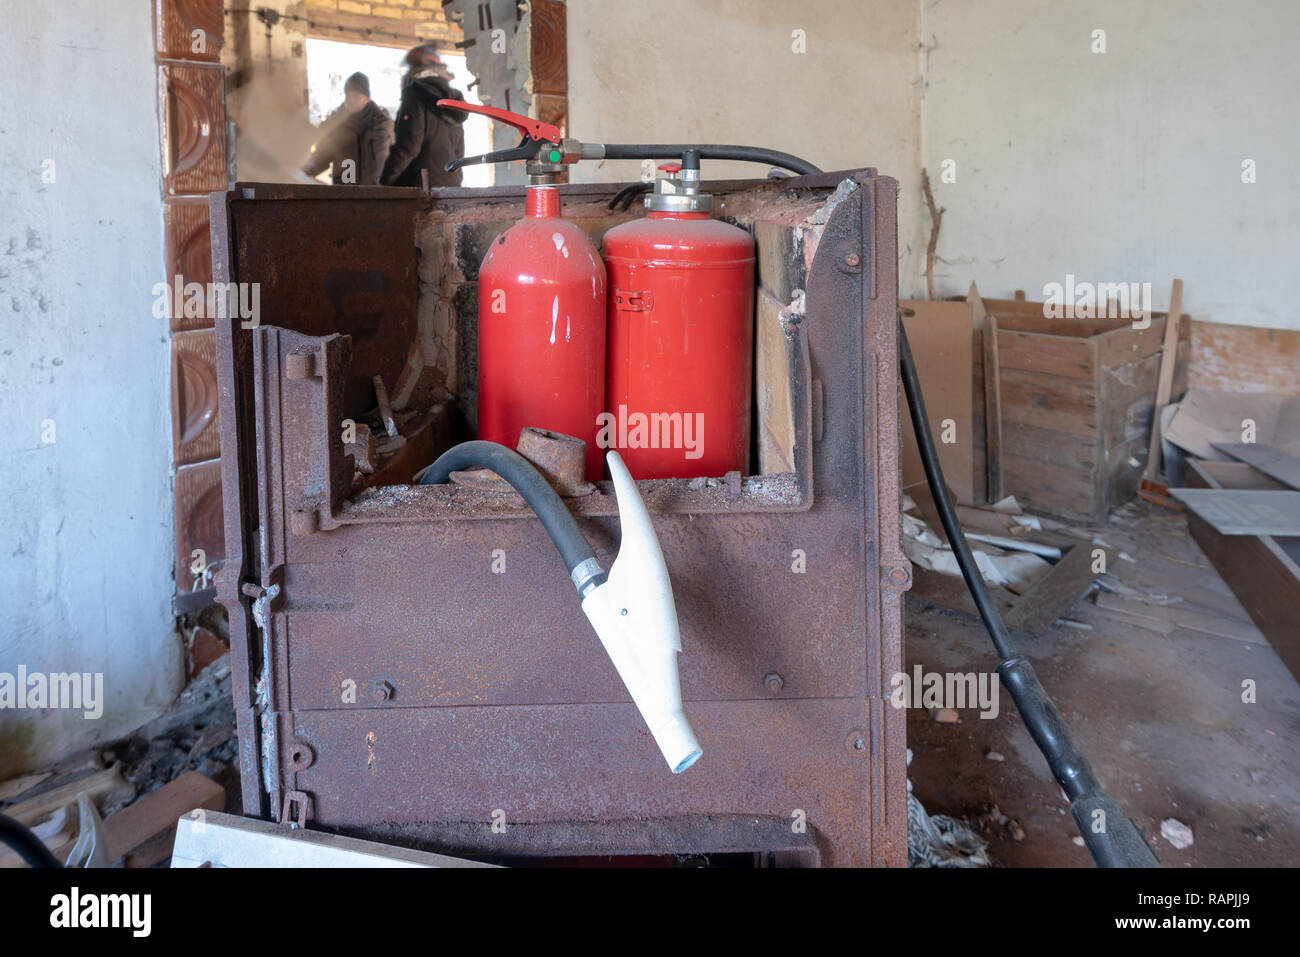 Prerow, Germany - December 30, 2018: View of a fire extinguisher in the former training centre of the Gesellschaft für Sport und Technik (GST) of the  - Stock Image